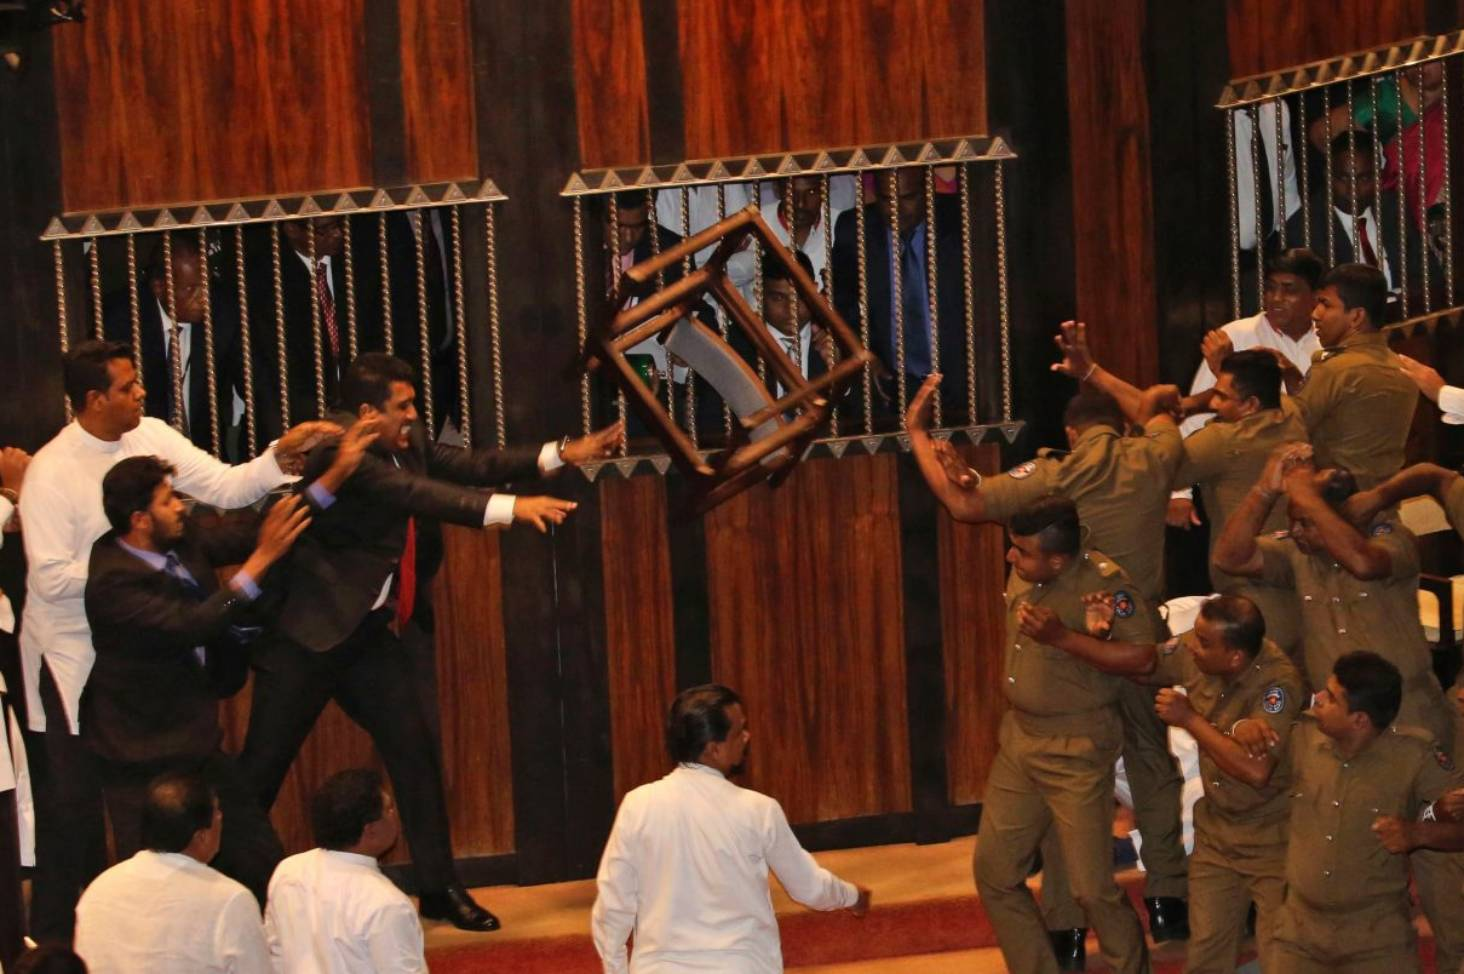 Sri Lankan leaders throw chairs and chili paste in Parliament